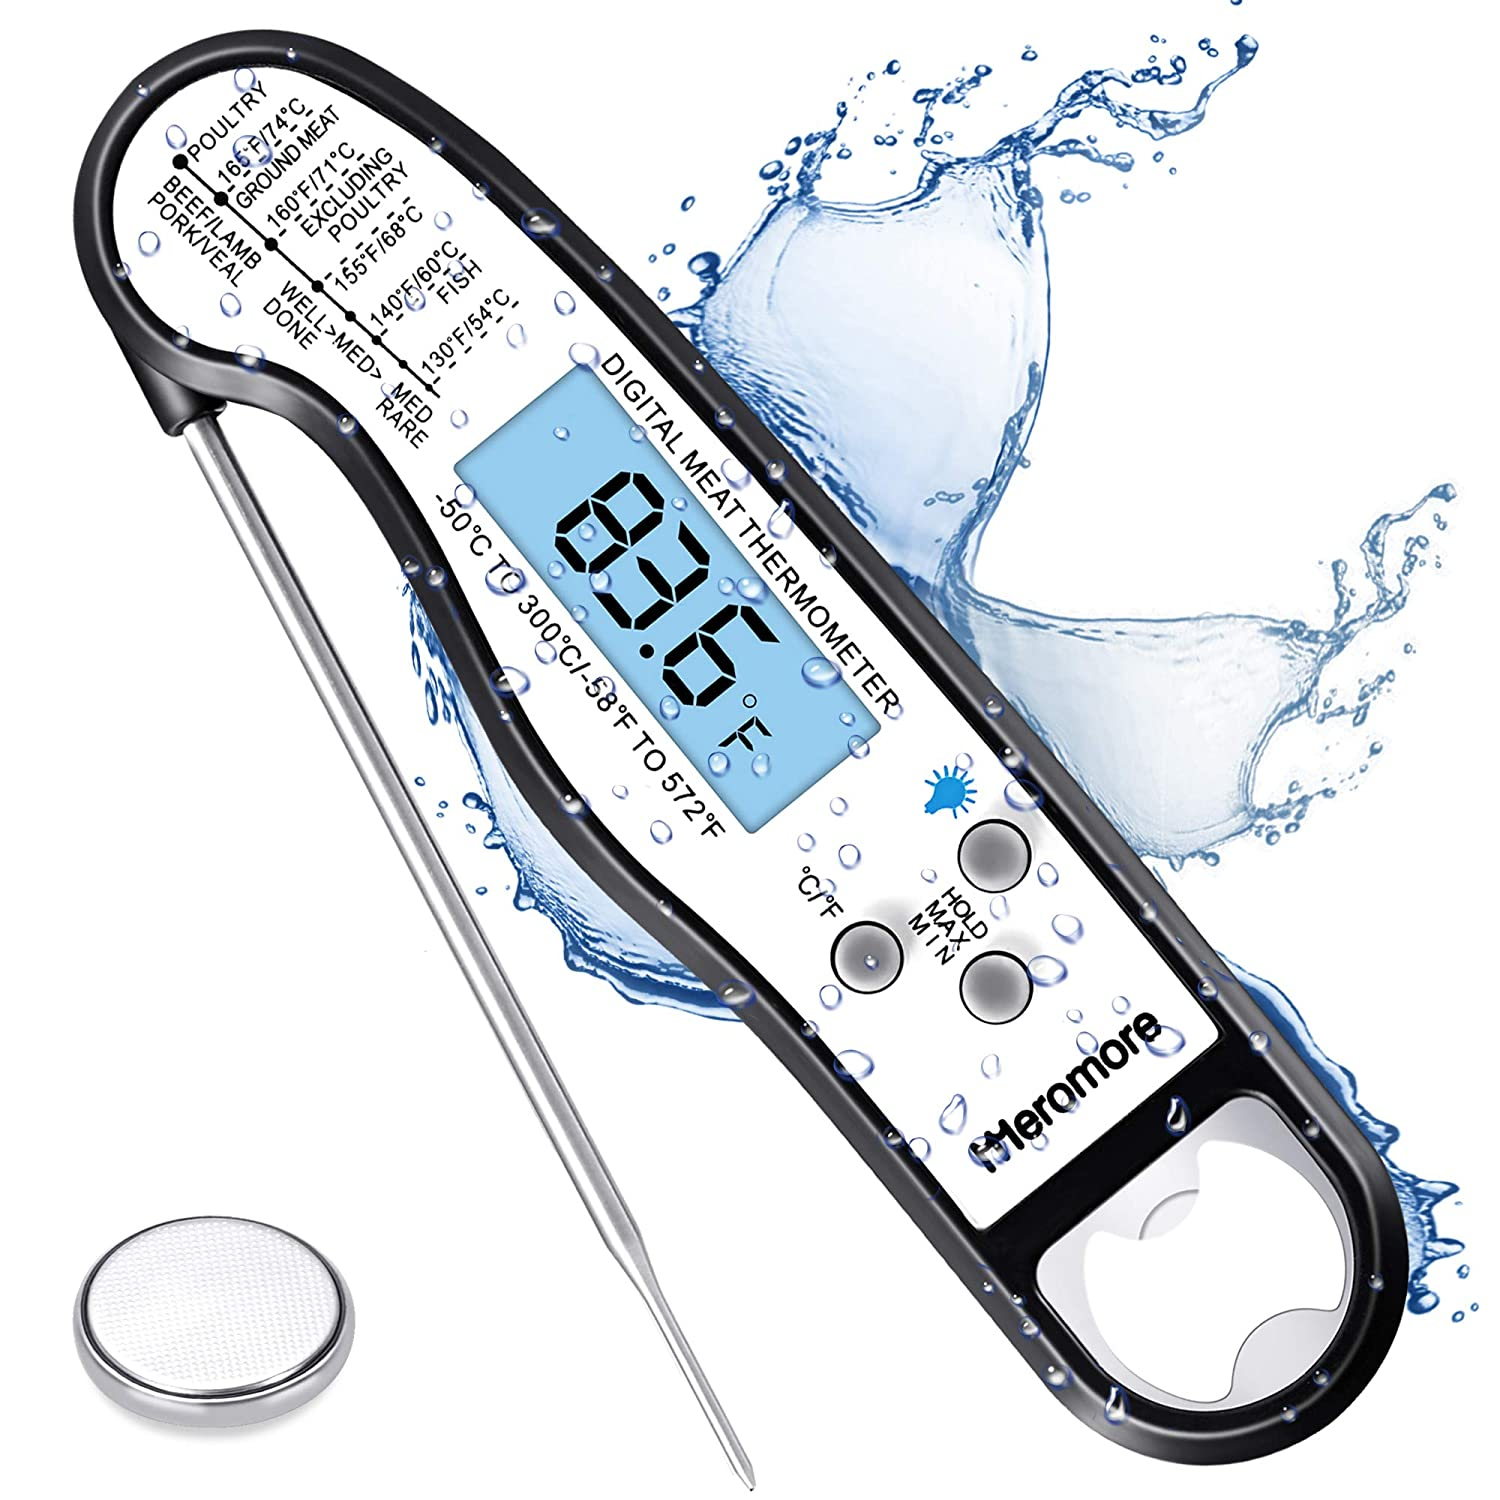 Meromore Digital Instant Read Meat Thermometer, Waterproof Ultra Fast Digital Cooking Thermometer with Backlight LCD & Calibration Food Thermometer Probe for Kitchen, BBQ, Grill